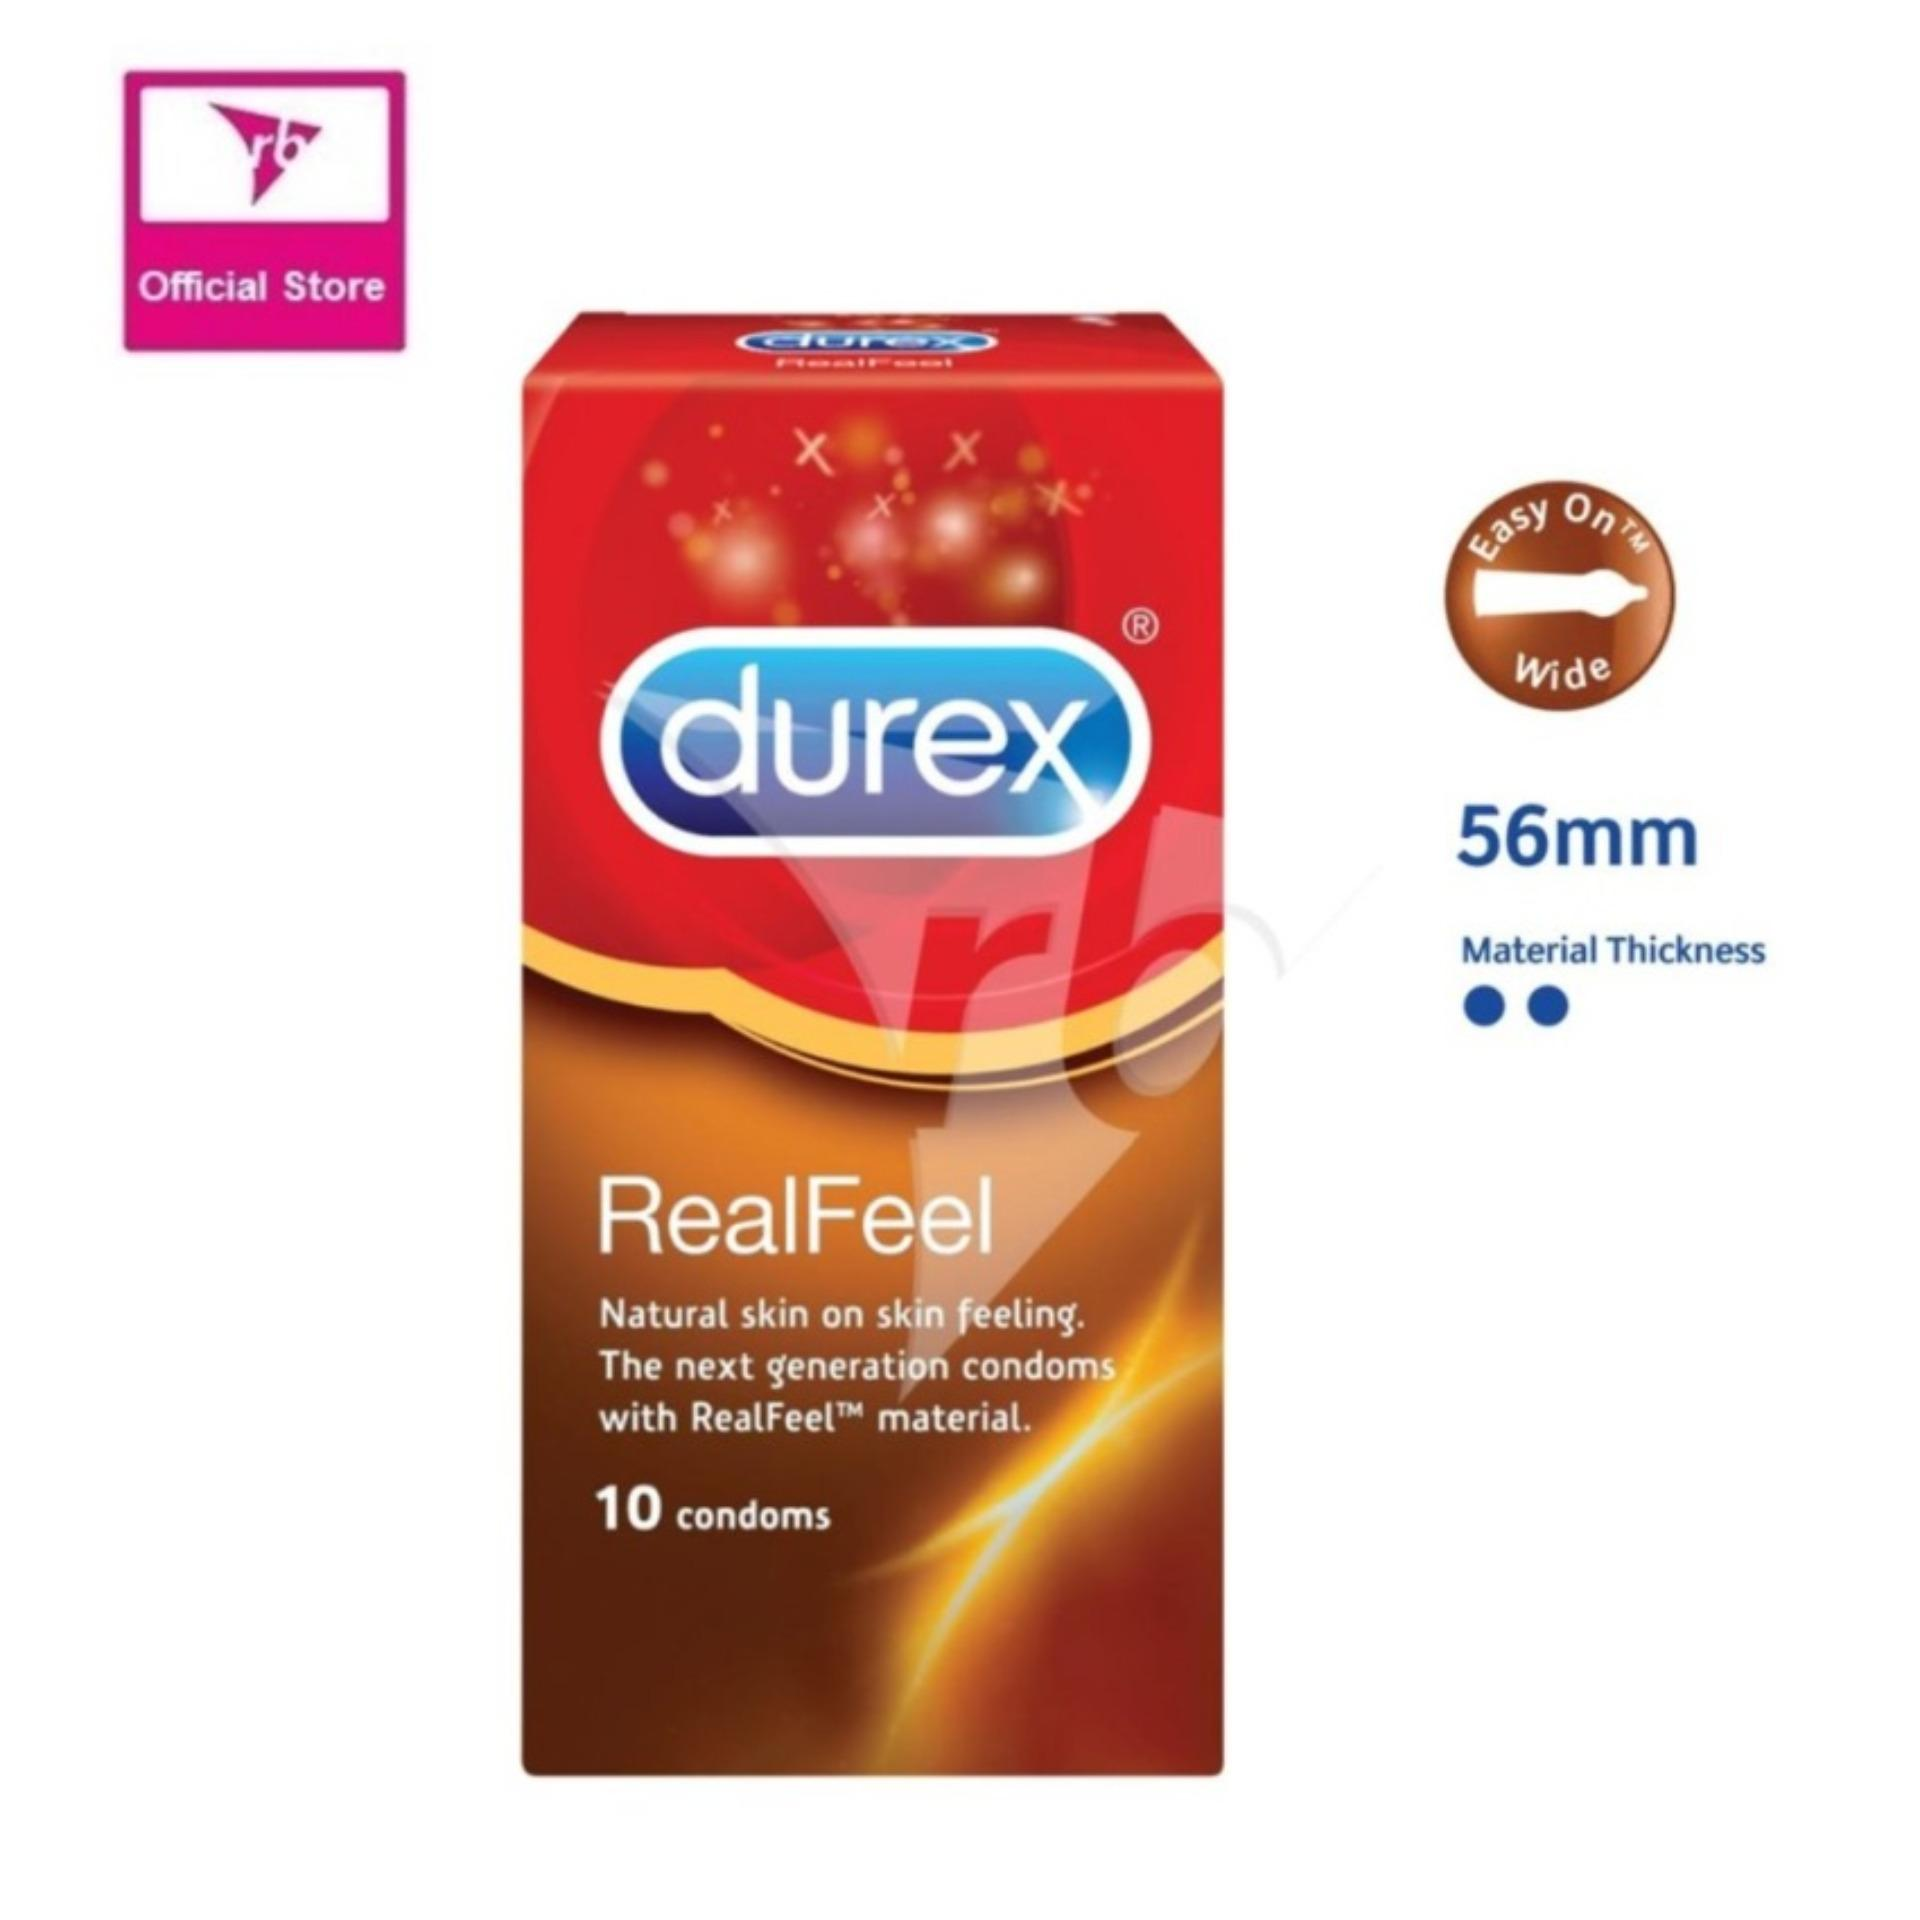 Durex Realfeel Condoms 10S Singapore